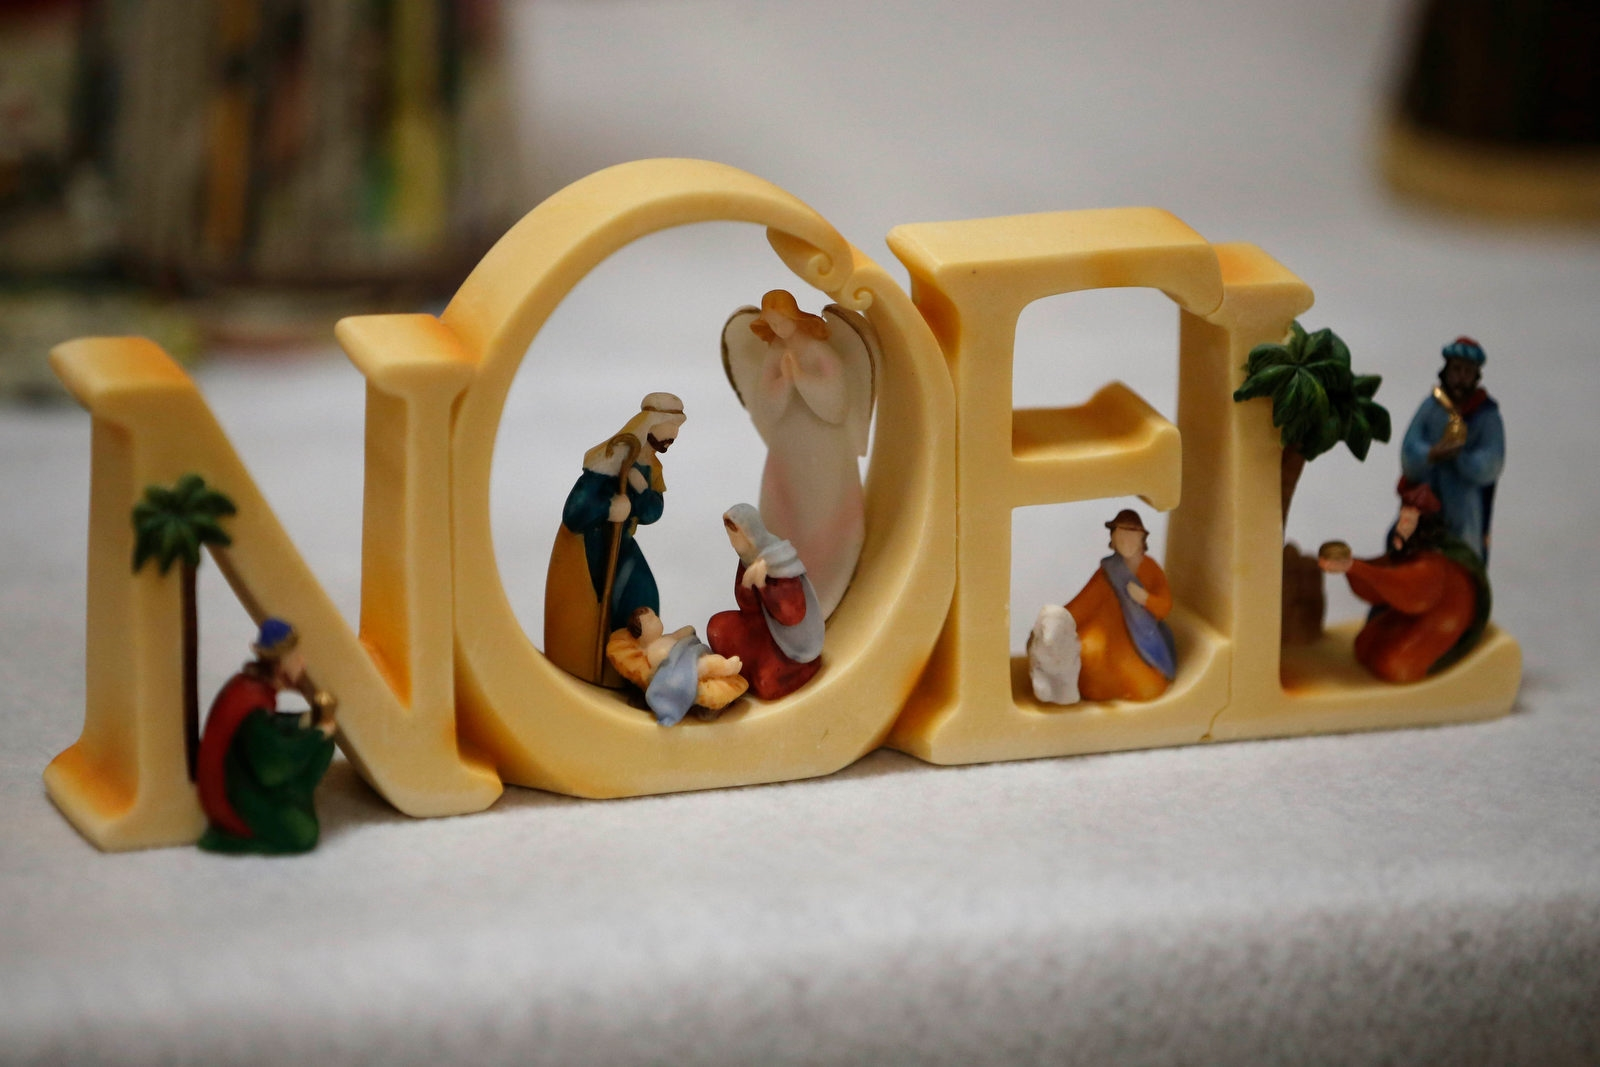 A nativity scene from the collection of Fr. Roy Herberger.